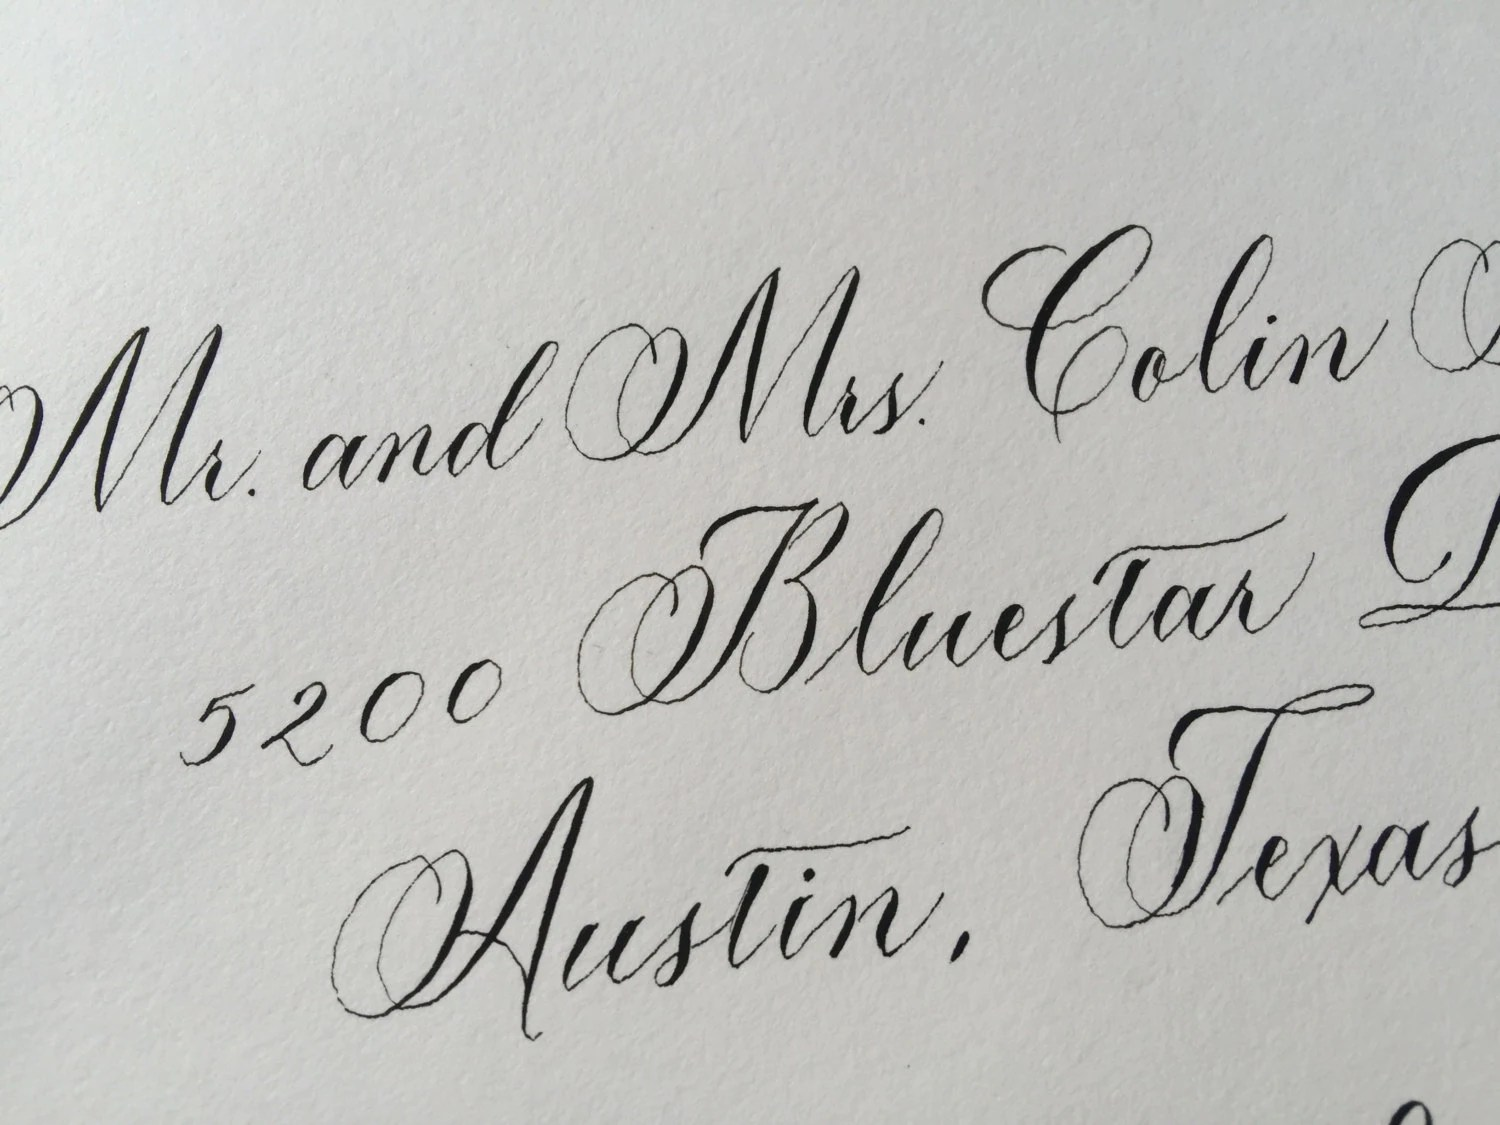 Copperplate Calligraphy Font Free Wedding Envelope Hand Lettered With Copperplate Calligraphy